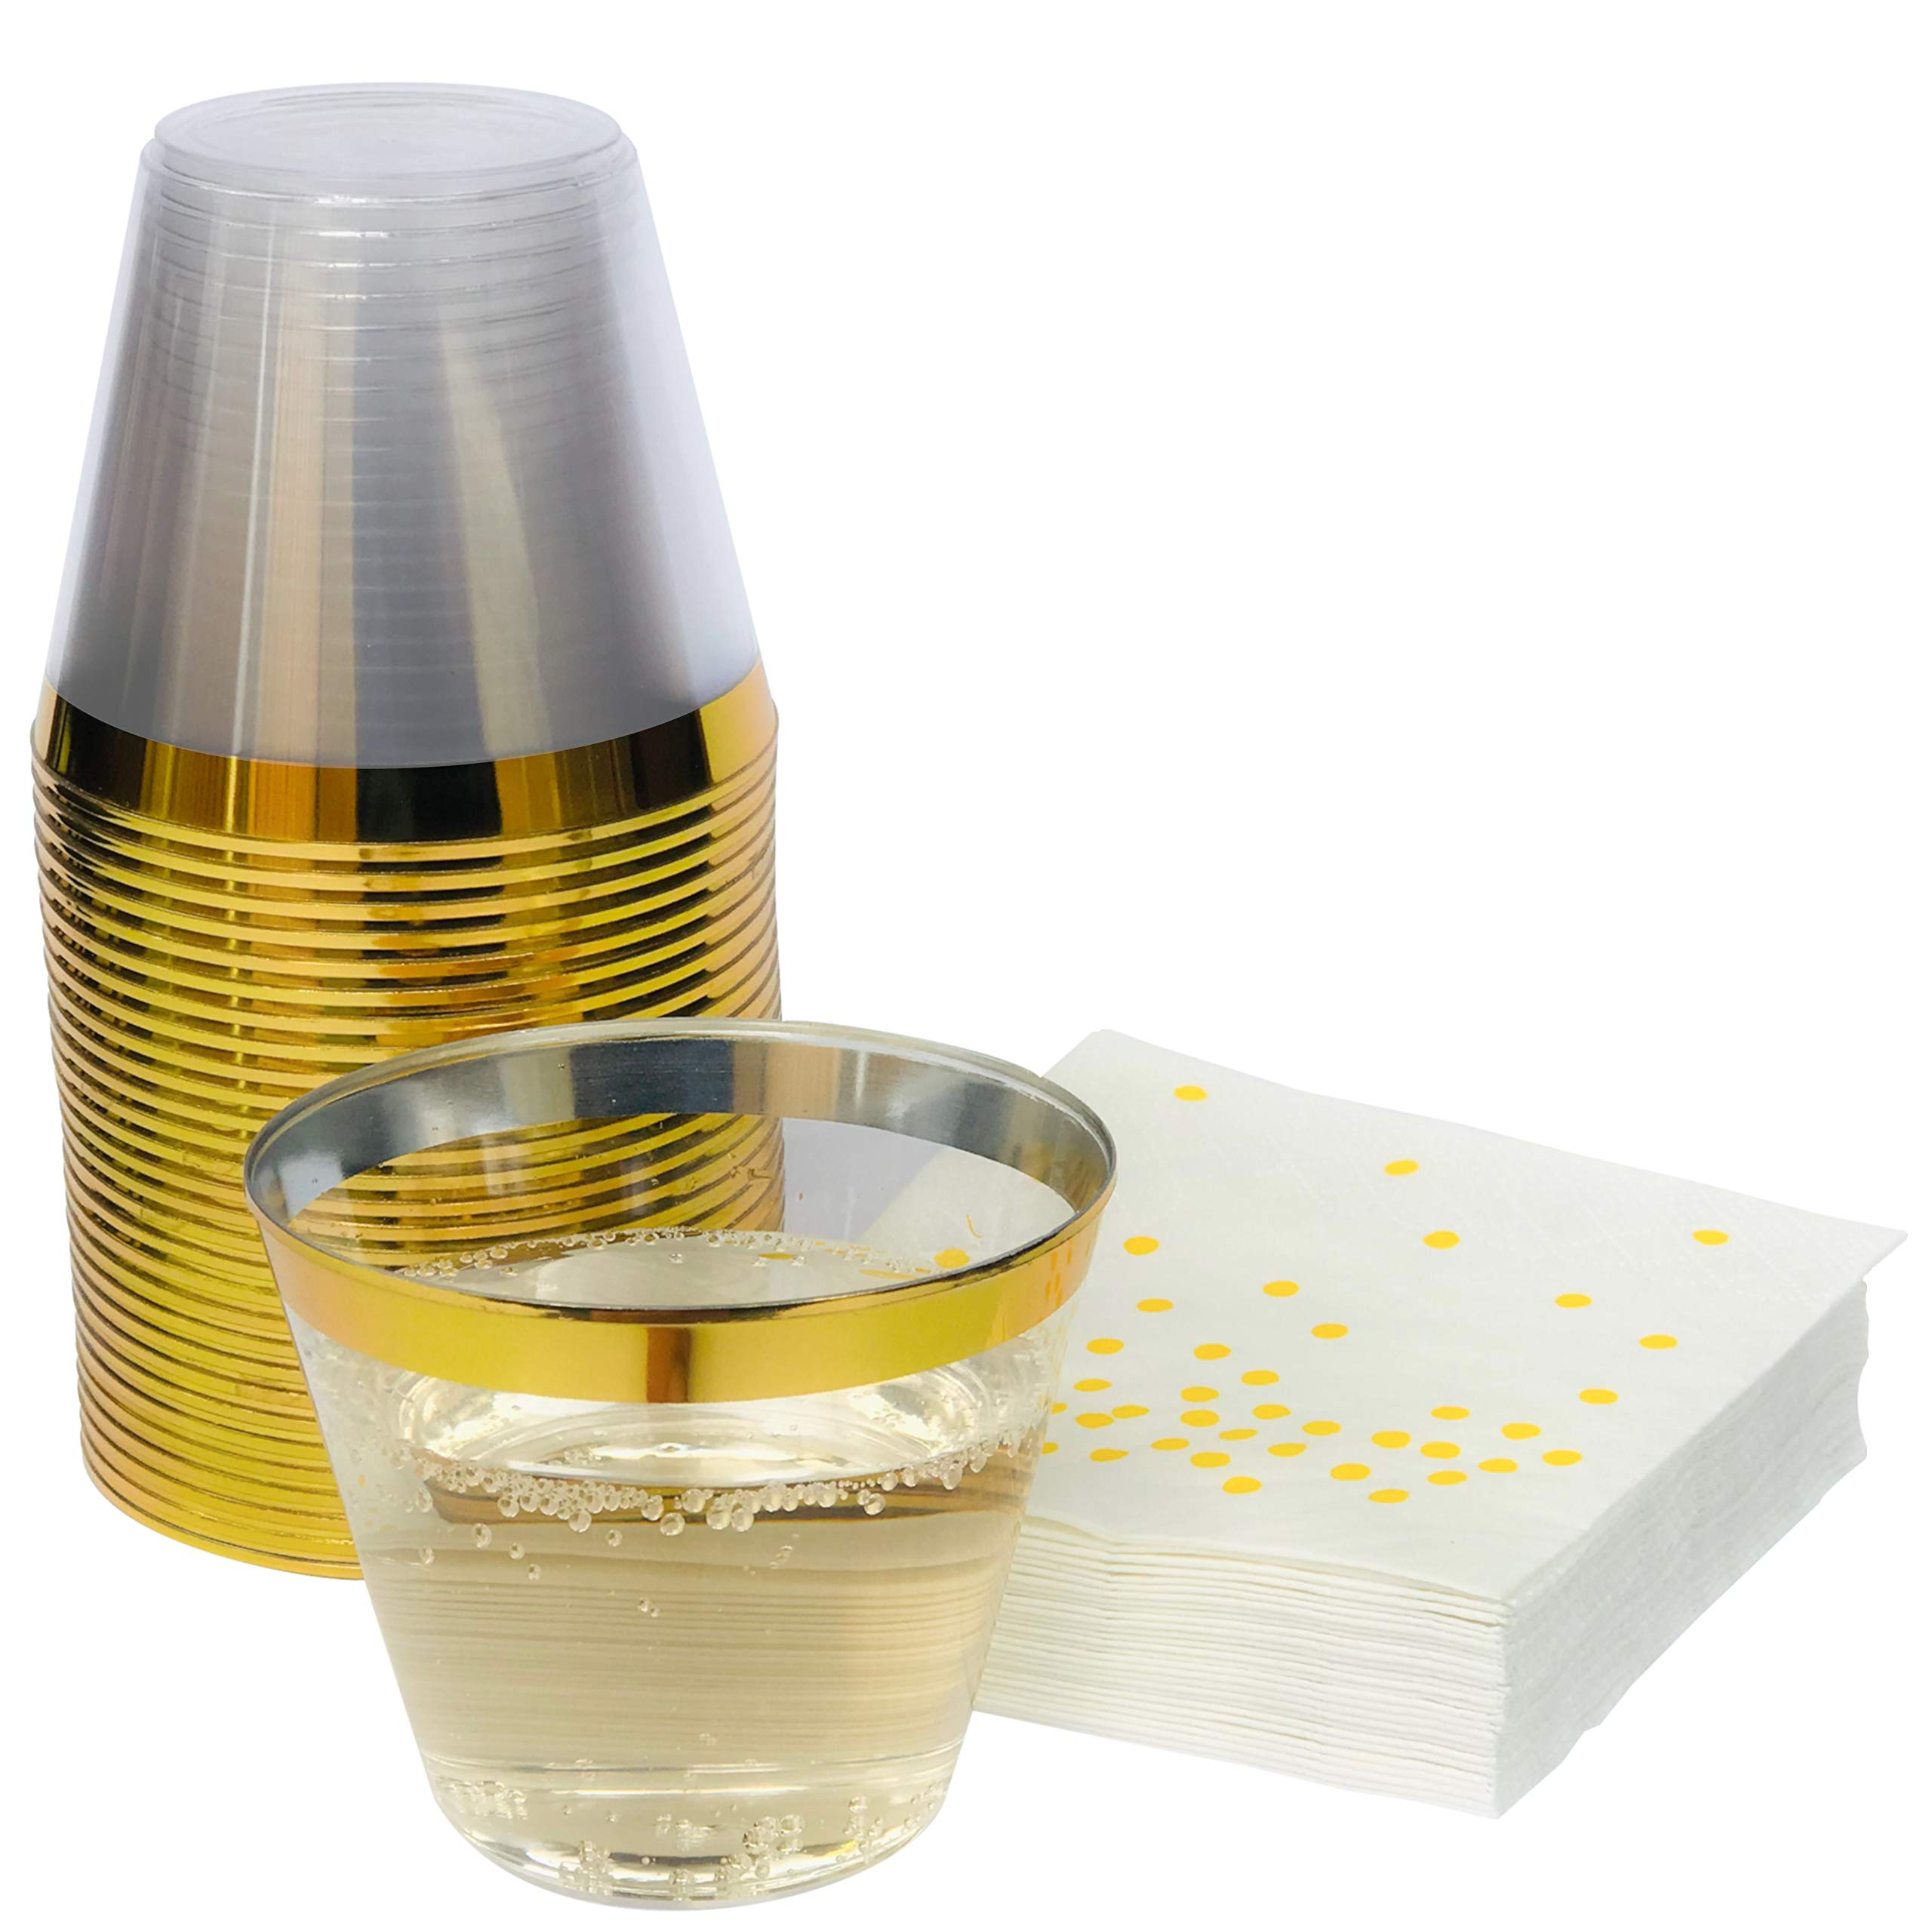 Premium 100 Gold Rimmed 9 oz Clear Plastic Cups + Free 100 Napkins ~ Perfect for Wedding/Engagement/ Cocktails/Dinner/Wine/Birthday Parties ~ Great Value Party Pack 100 Gold Rim Cups + 100 Napkins